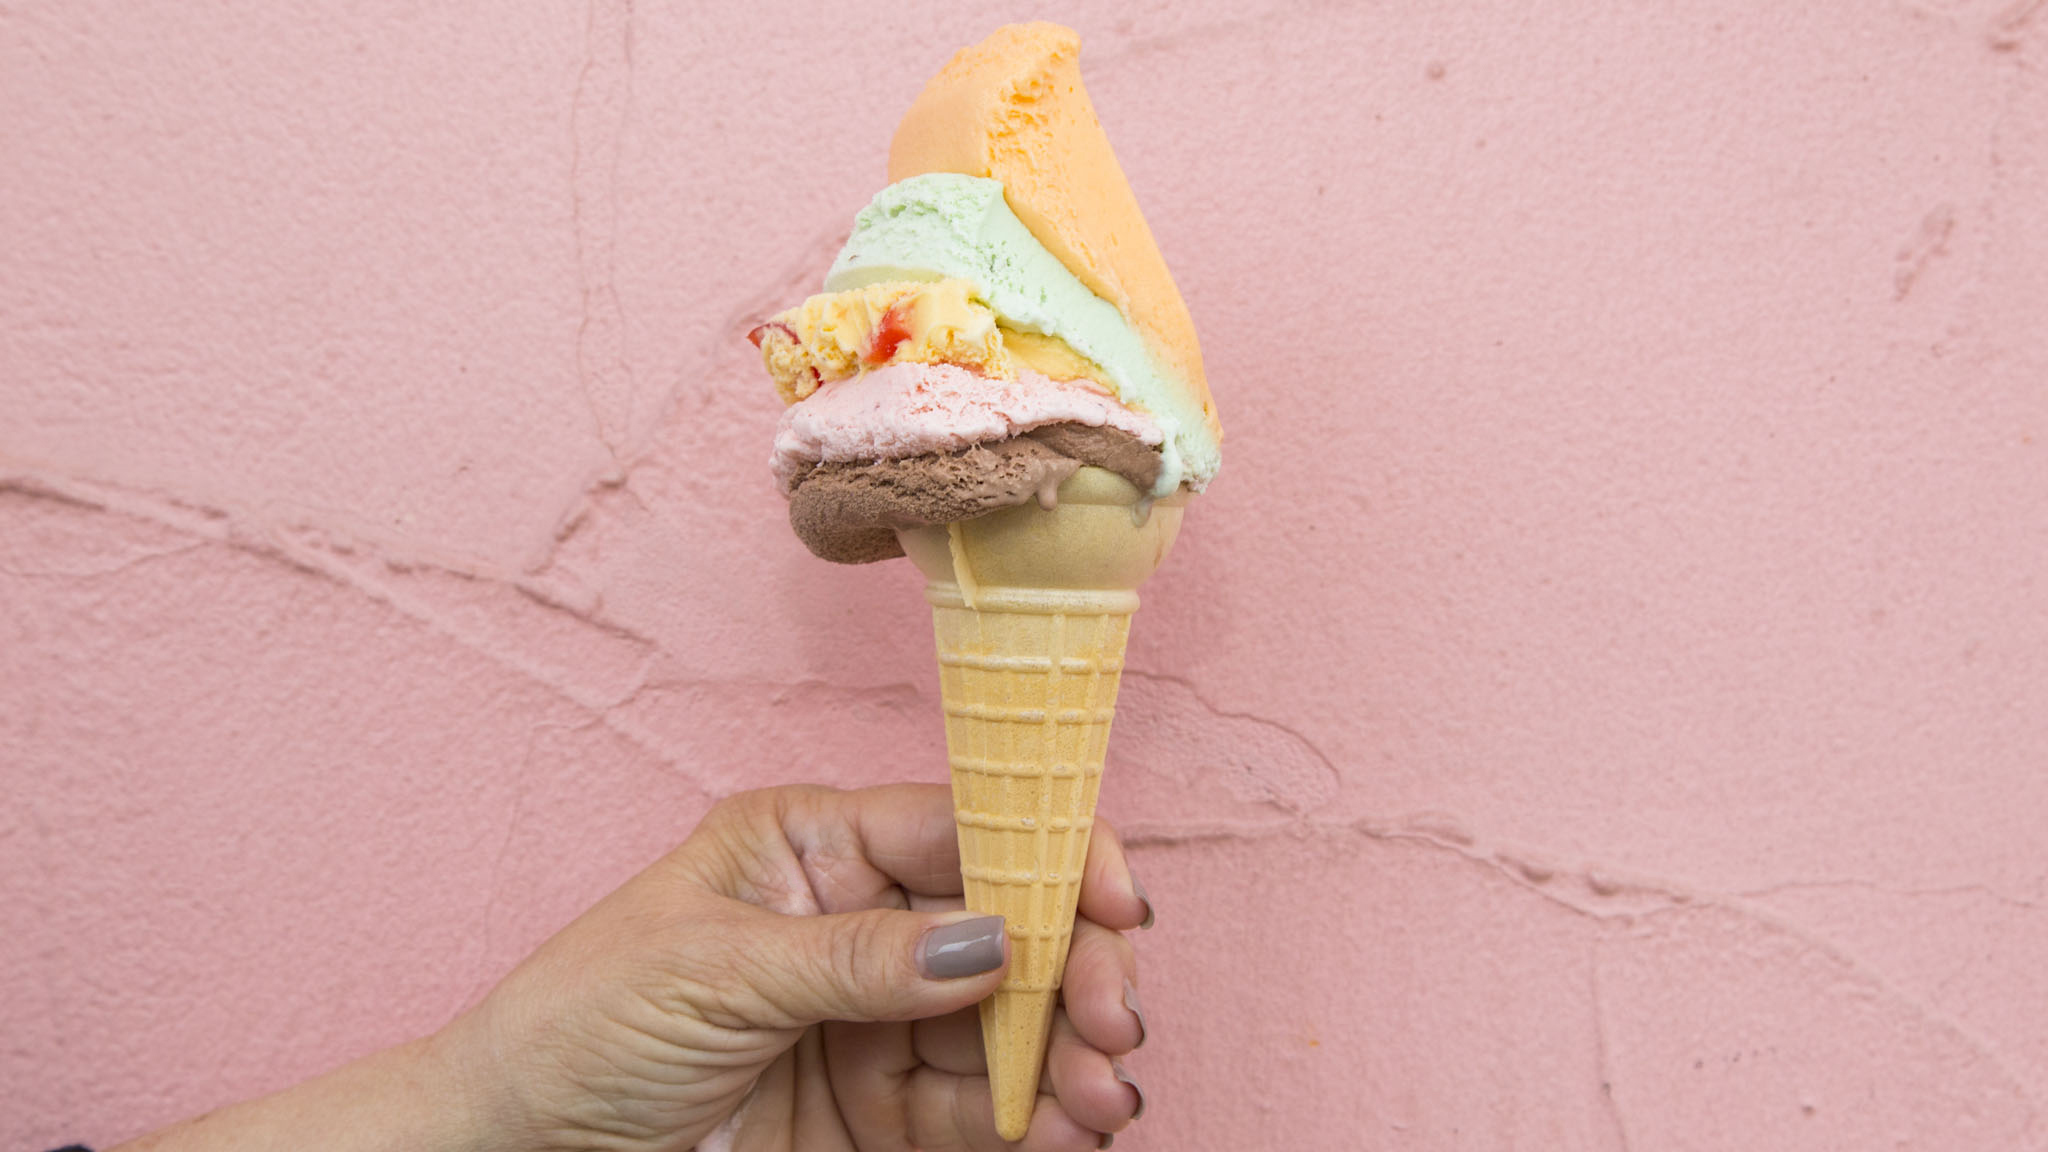 The Original Rainbow Cone is opening a new location in Lombard